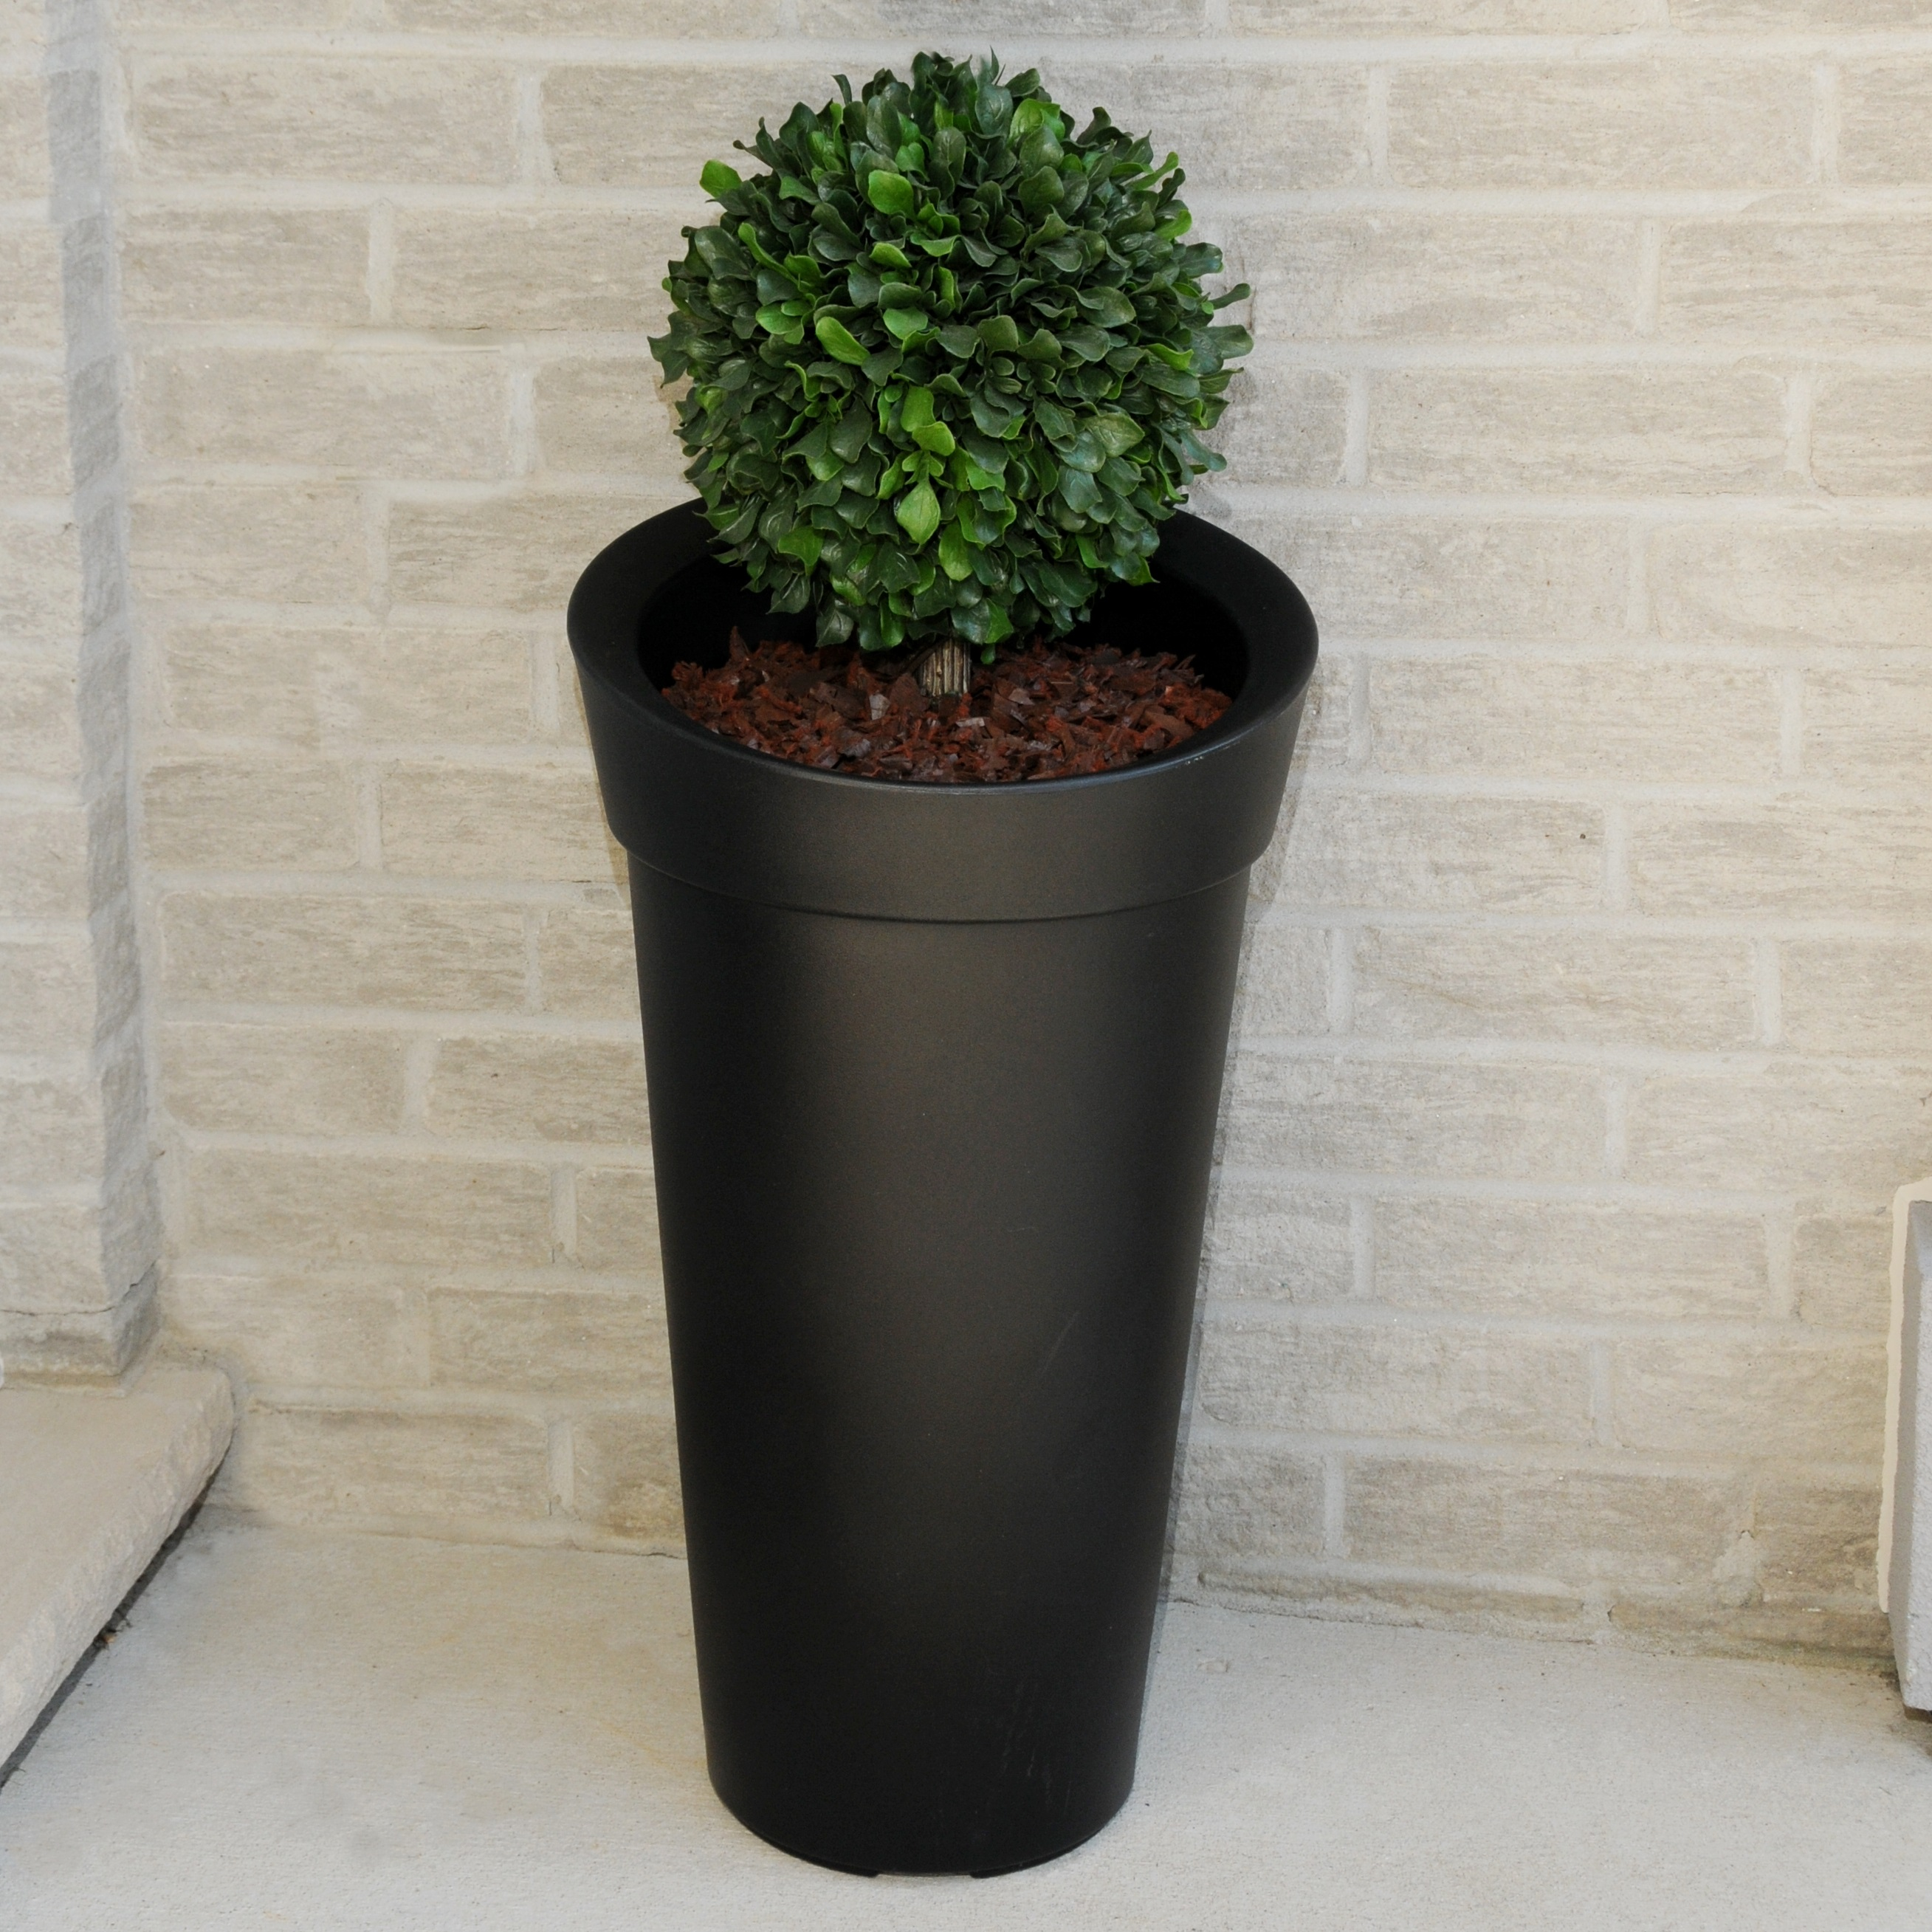 Creston Tall Planter Black by Mayne Inc.